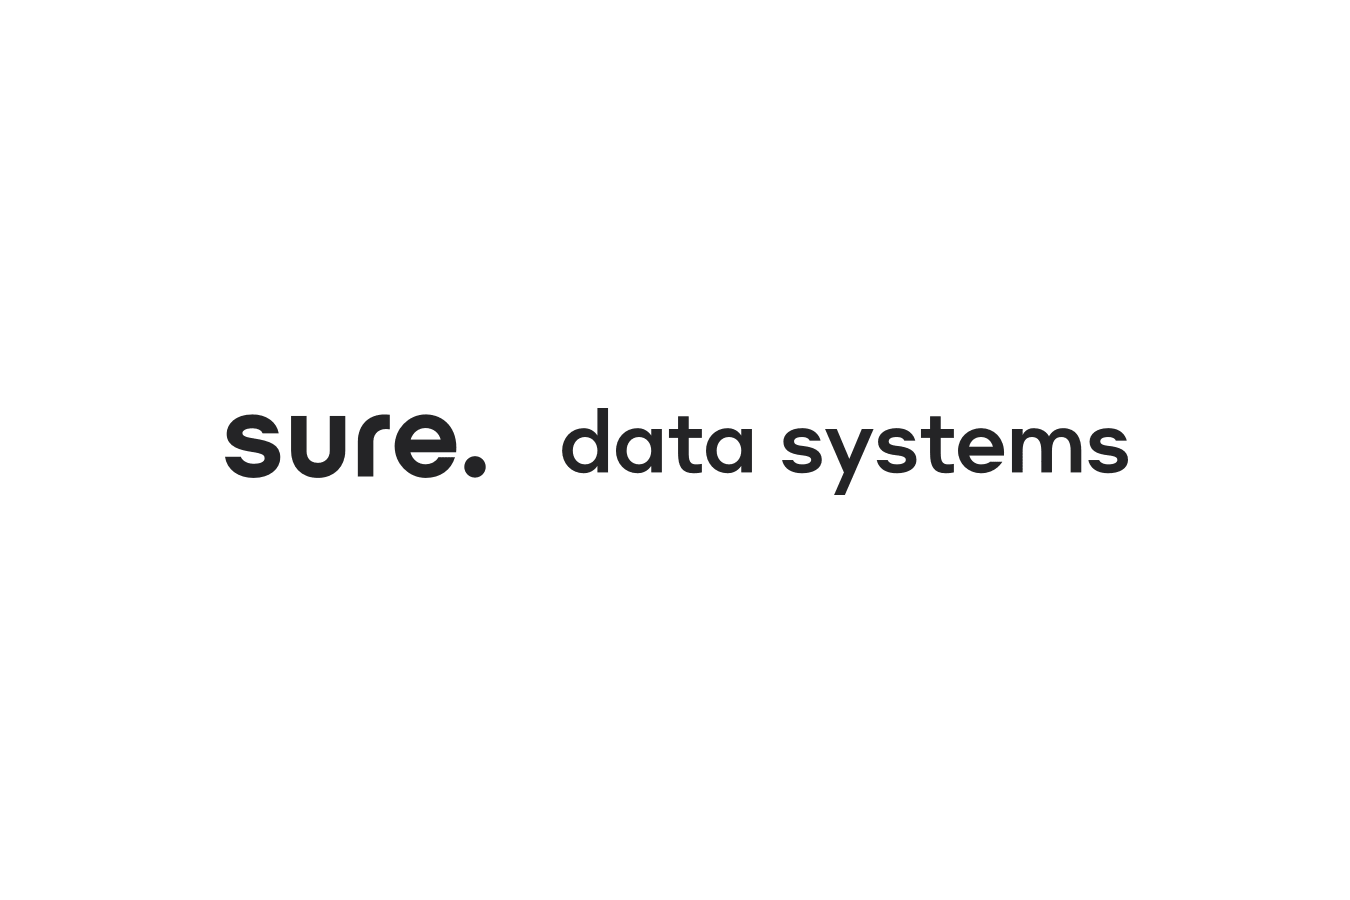 sure data systems